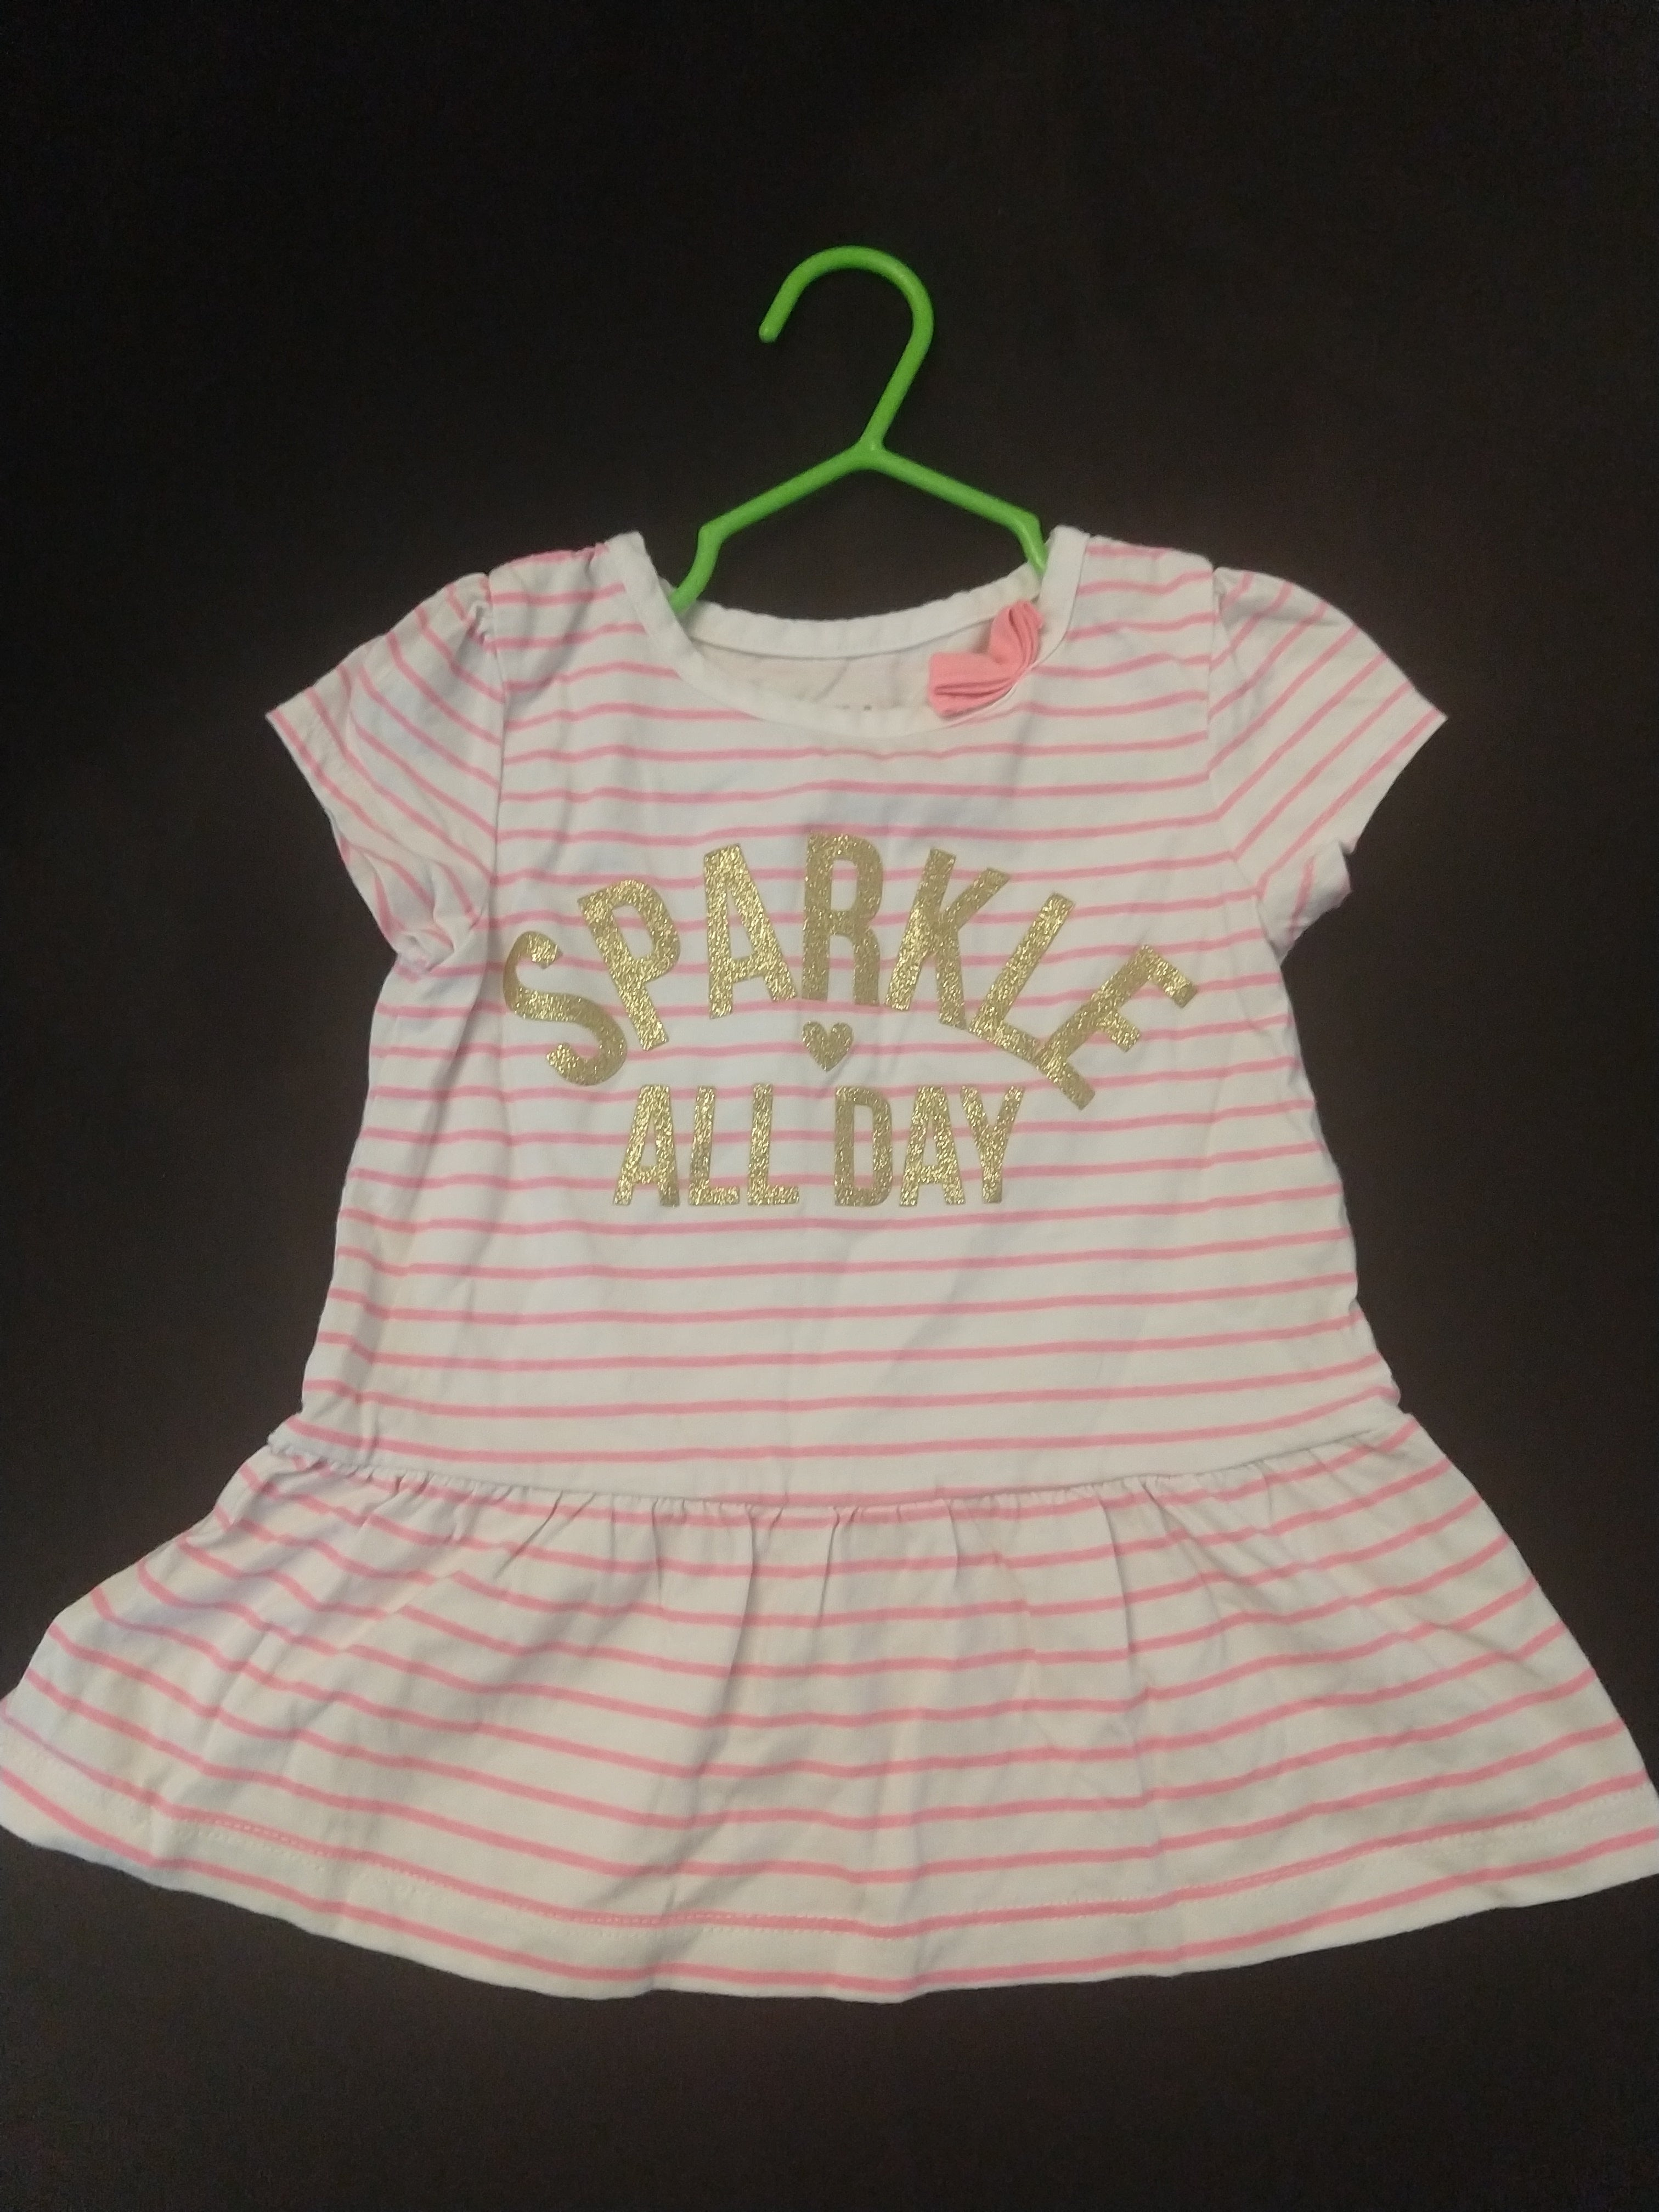 "CHILD OF MINE white/pink stripe peplum tunic ""Sparkle All Day"". SIZE 2T"